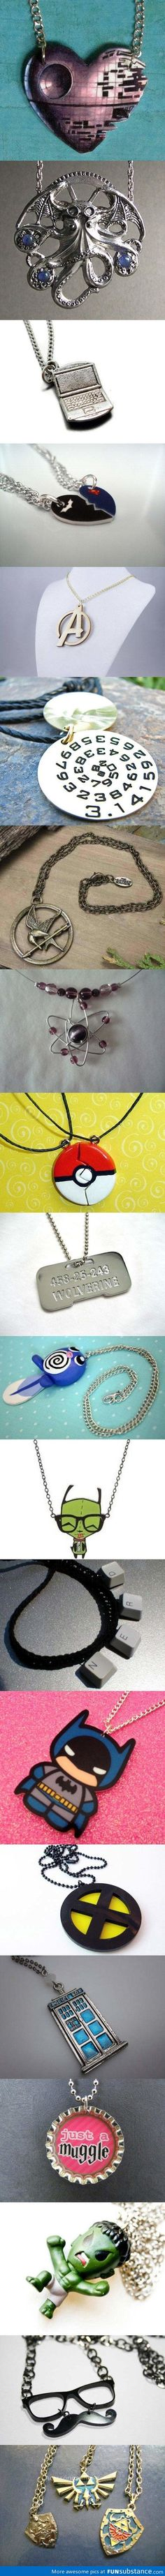 A collection of 20 cool and creative necklaces for geeks